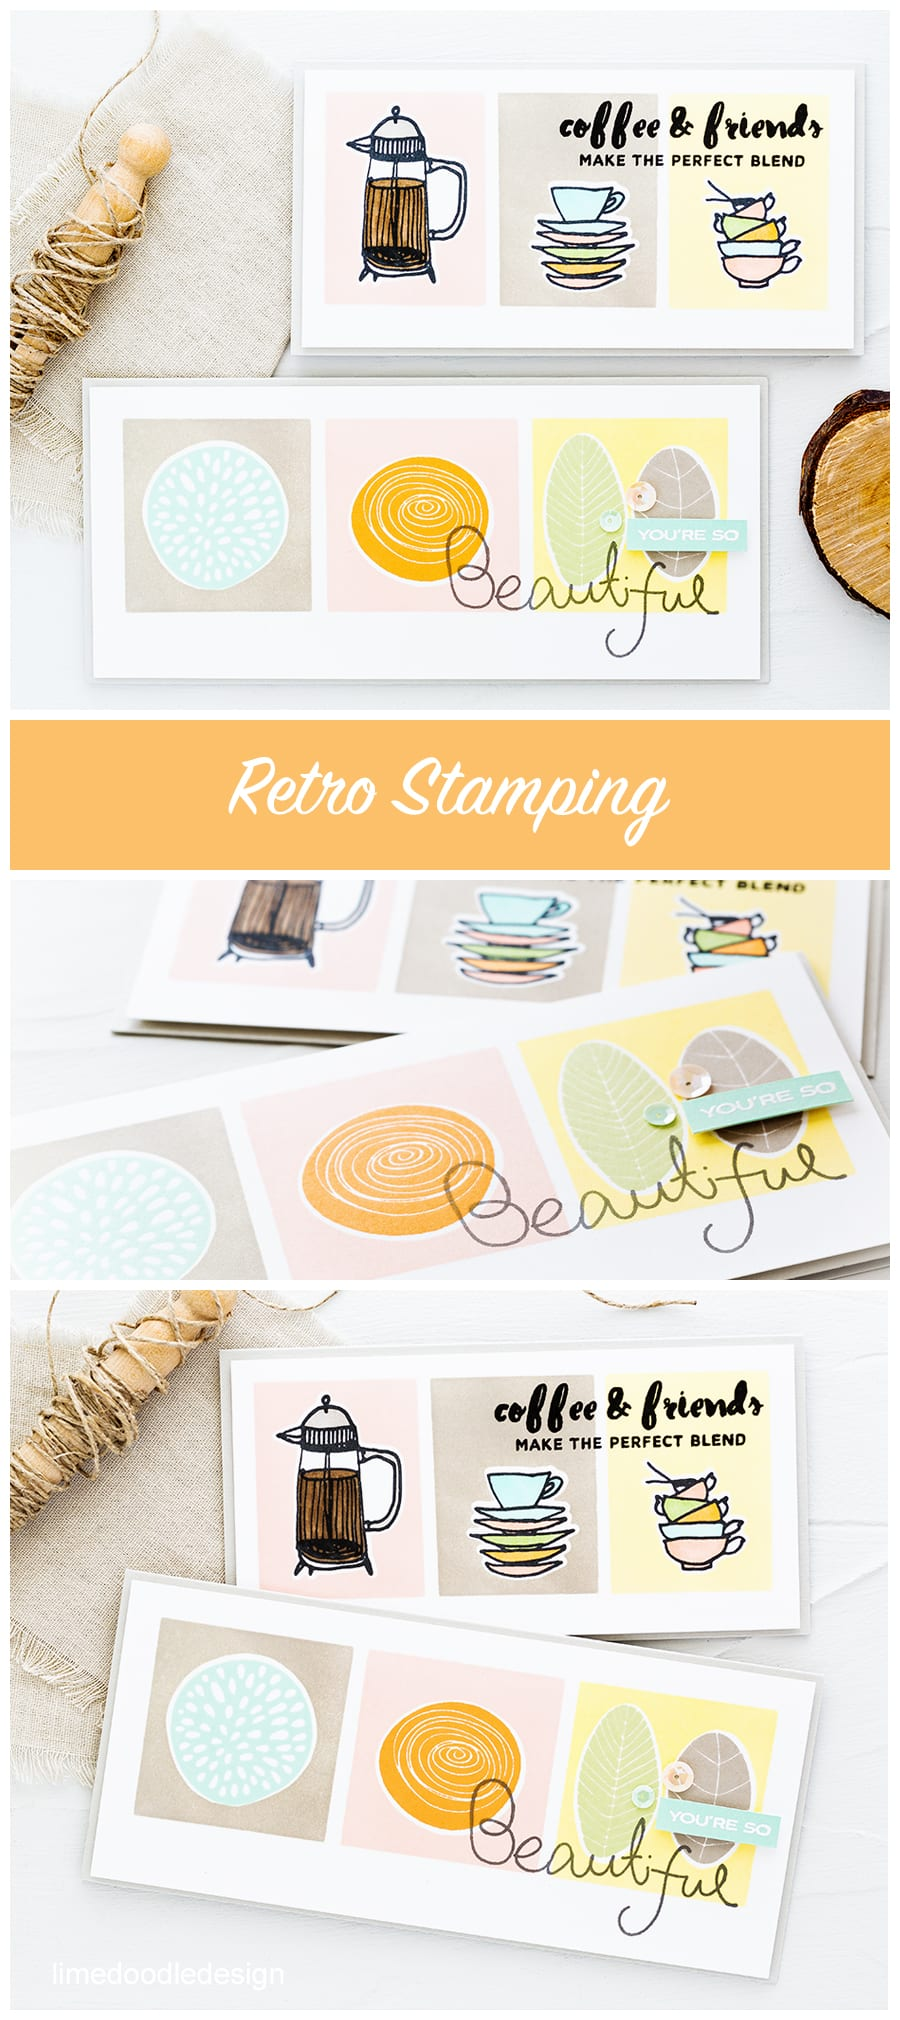 Video tutorial showing how to create retro stamping look. Find out more about these flower and coffee cards by clicking on the following link: https://limedoodledesign.com/2016/10/video-retro-stamping-flowers-and-coffee-giveaway/